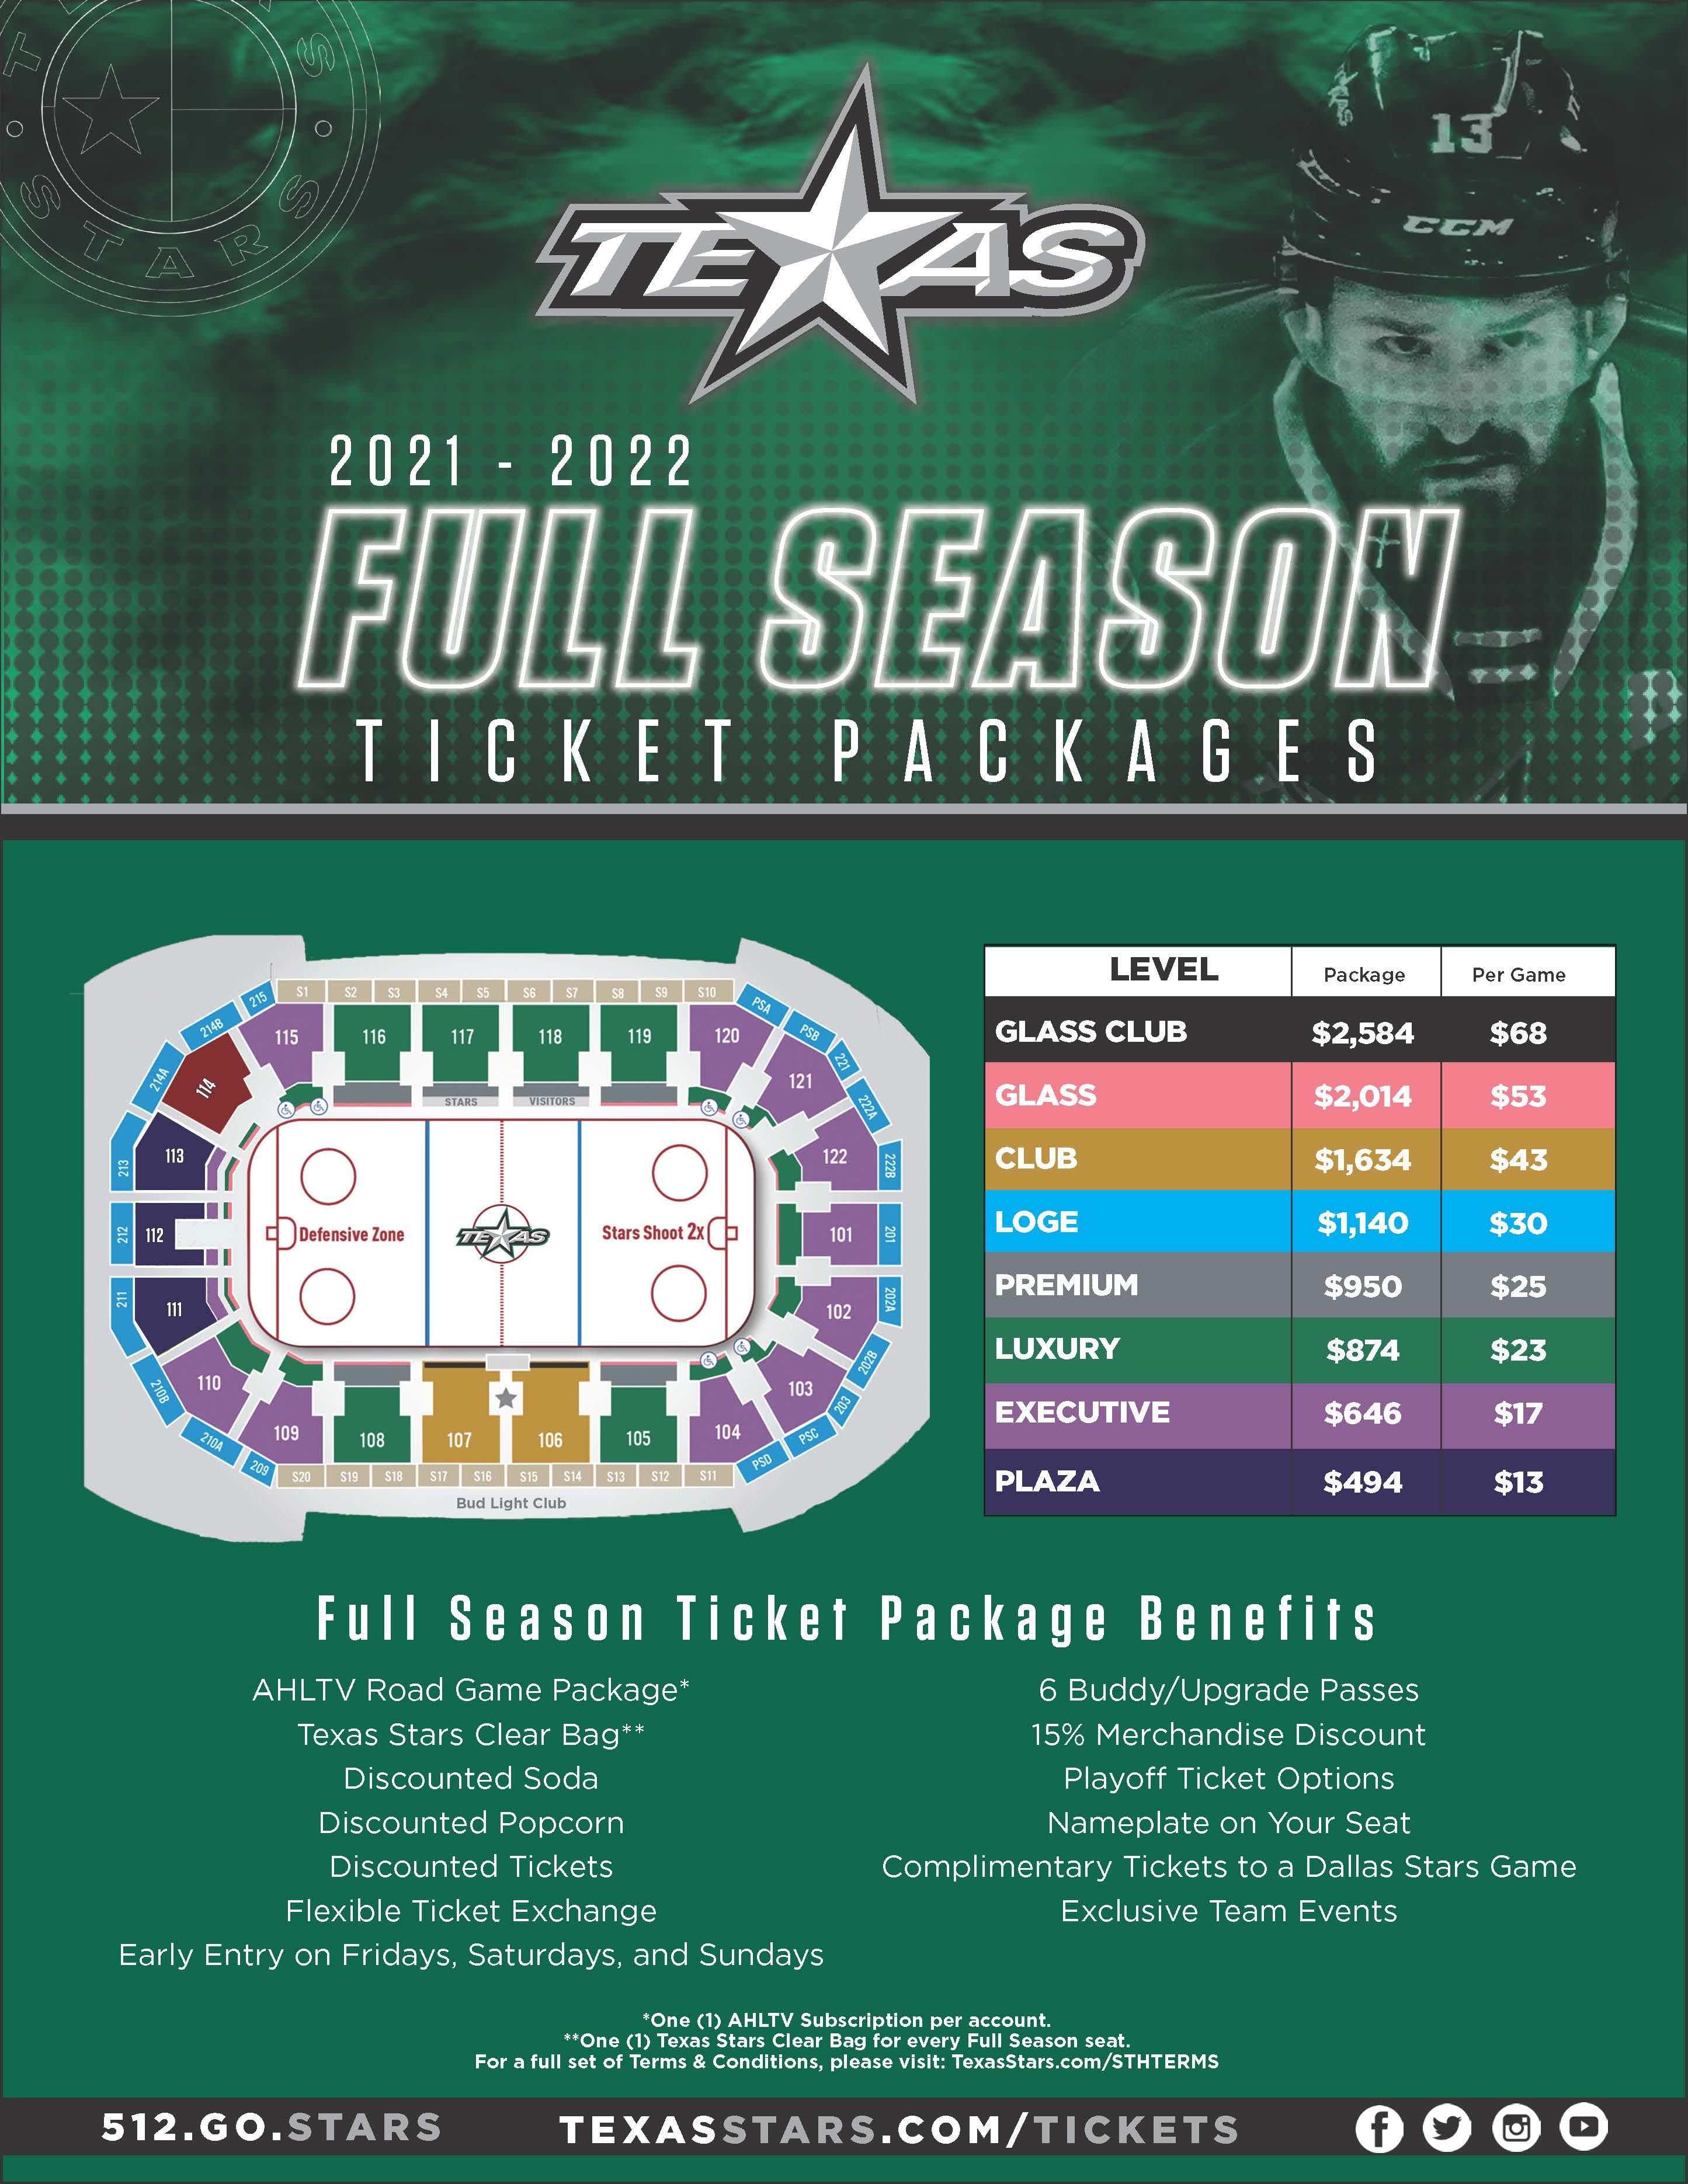 2122TicketPackage_FullSeason.jpg